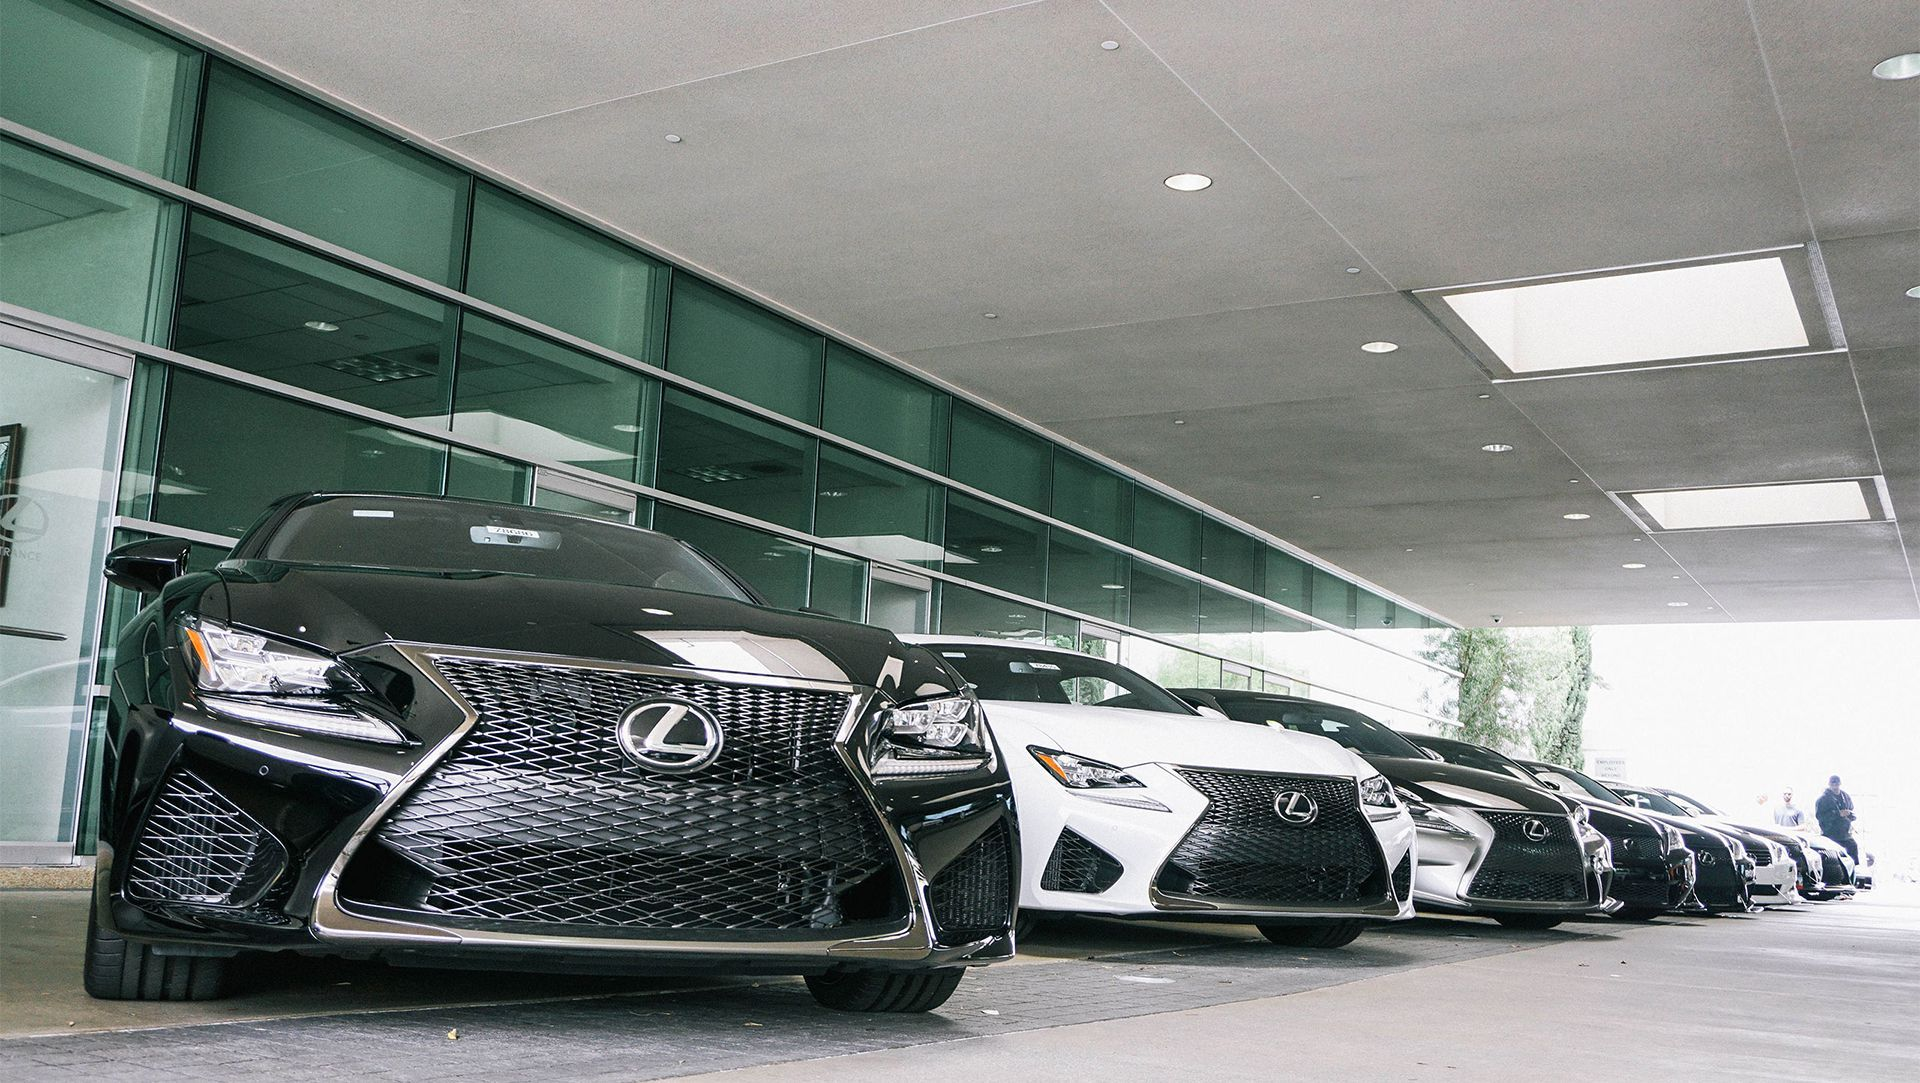 Photo Gallery : The Lexus Of Westminster Car Meet In Southern California